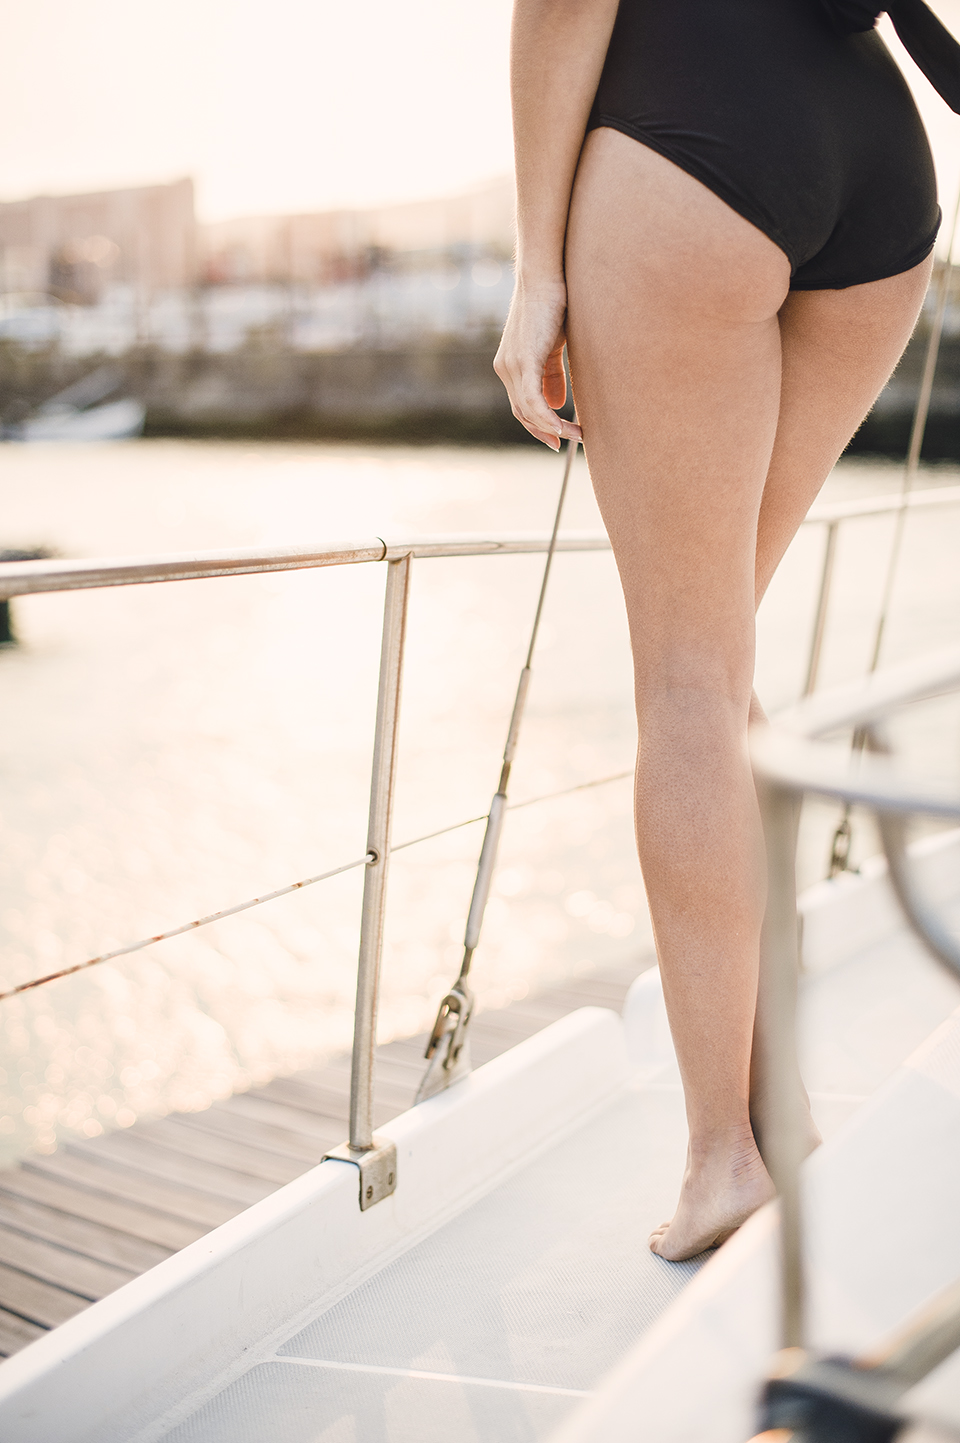 RyanParker_CapeTown_Photographer_Editorial_Fashion_Yacht_Nautical_RyanParker_CapeTown_Photographer_Editorial_Fashion_Yacht_Nautical_DSC_1594.jpg